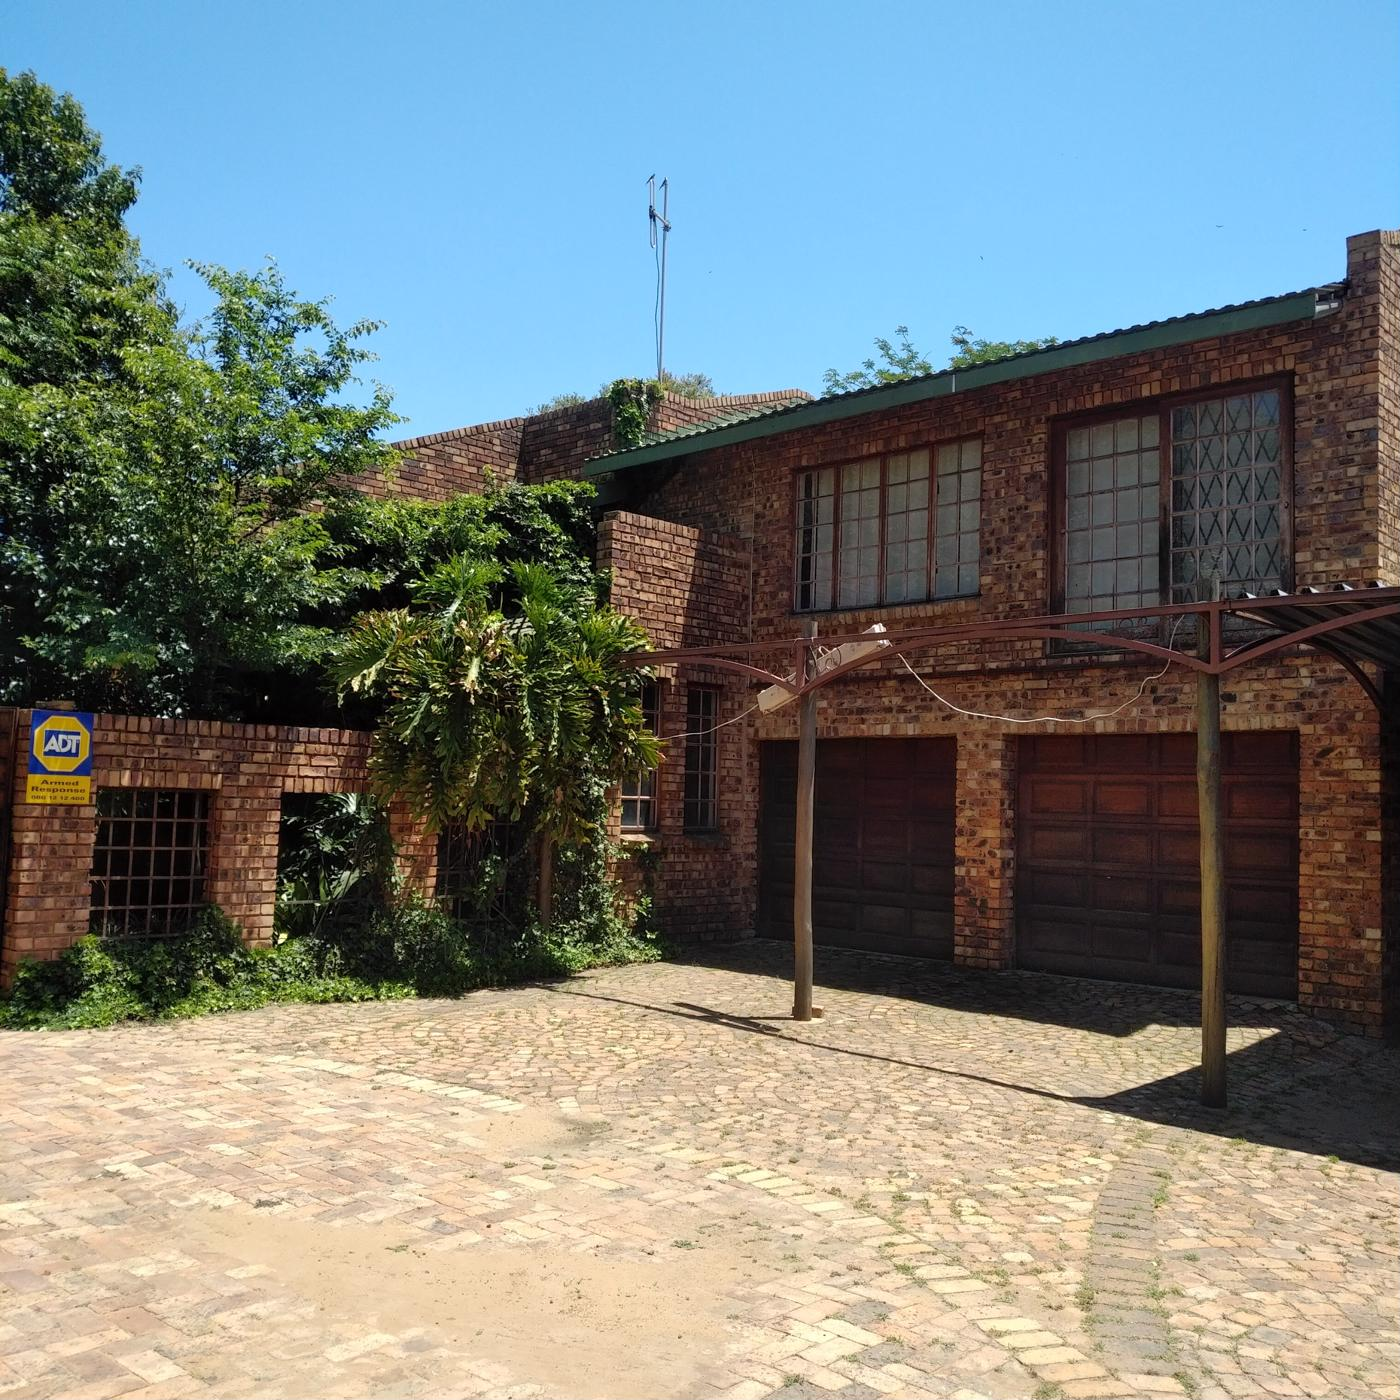 https://listing.pamgolding.co.za/images/properties/201811/1122707/H/1122707_H_1.jpg